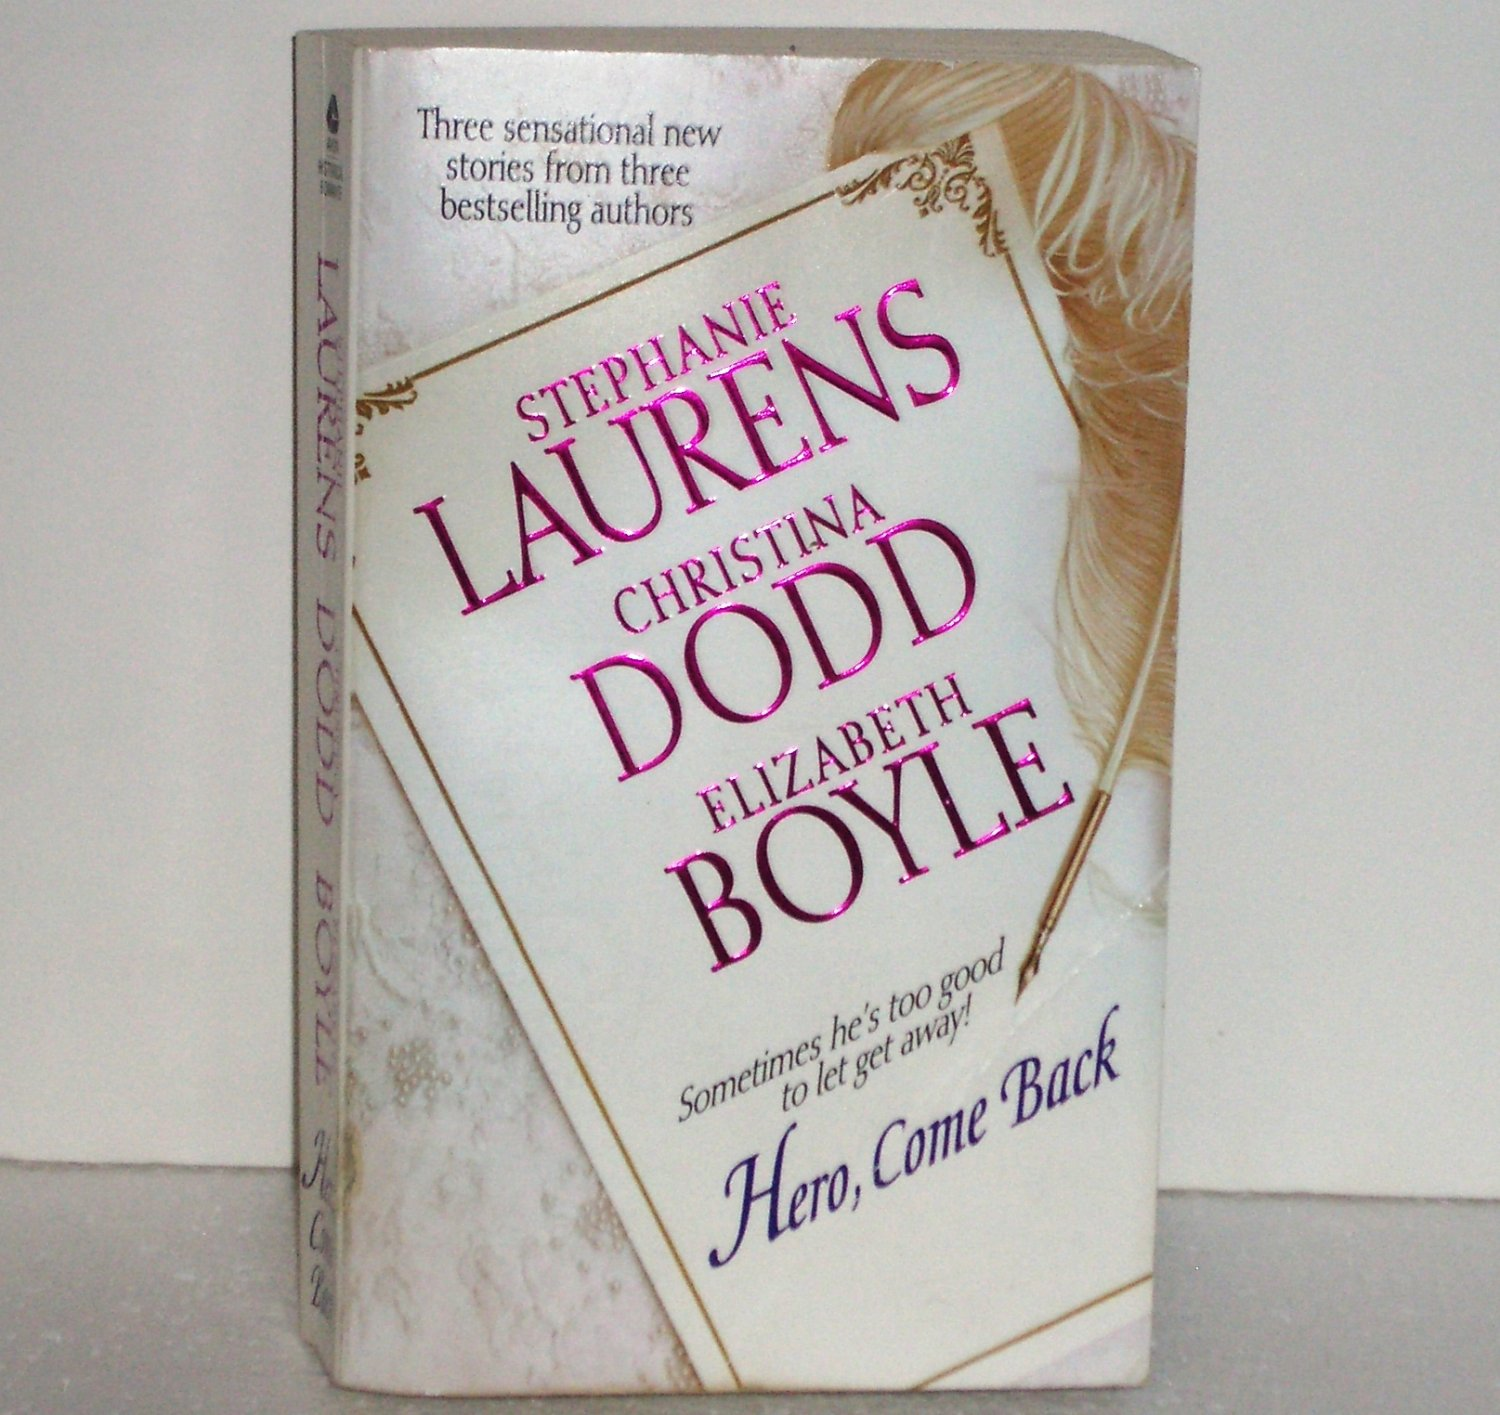 Hero, Come Back by Stephanie Laurens, Christina Dodd, Elizabeth Boyle 3-in-1 Romance 2005